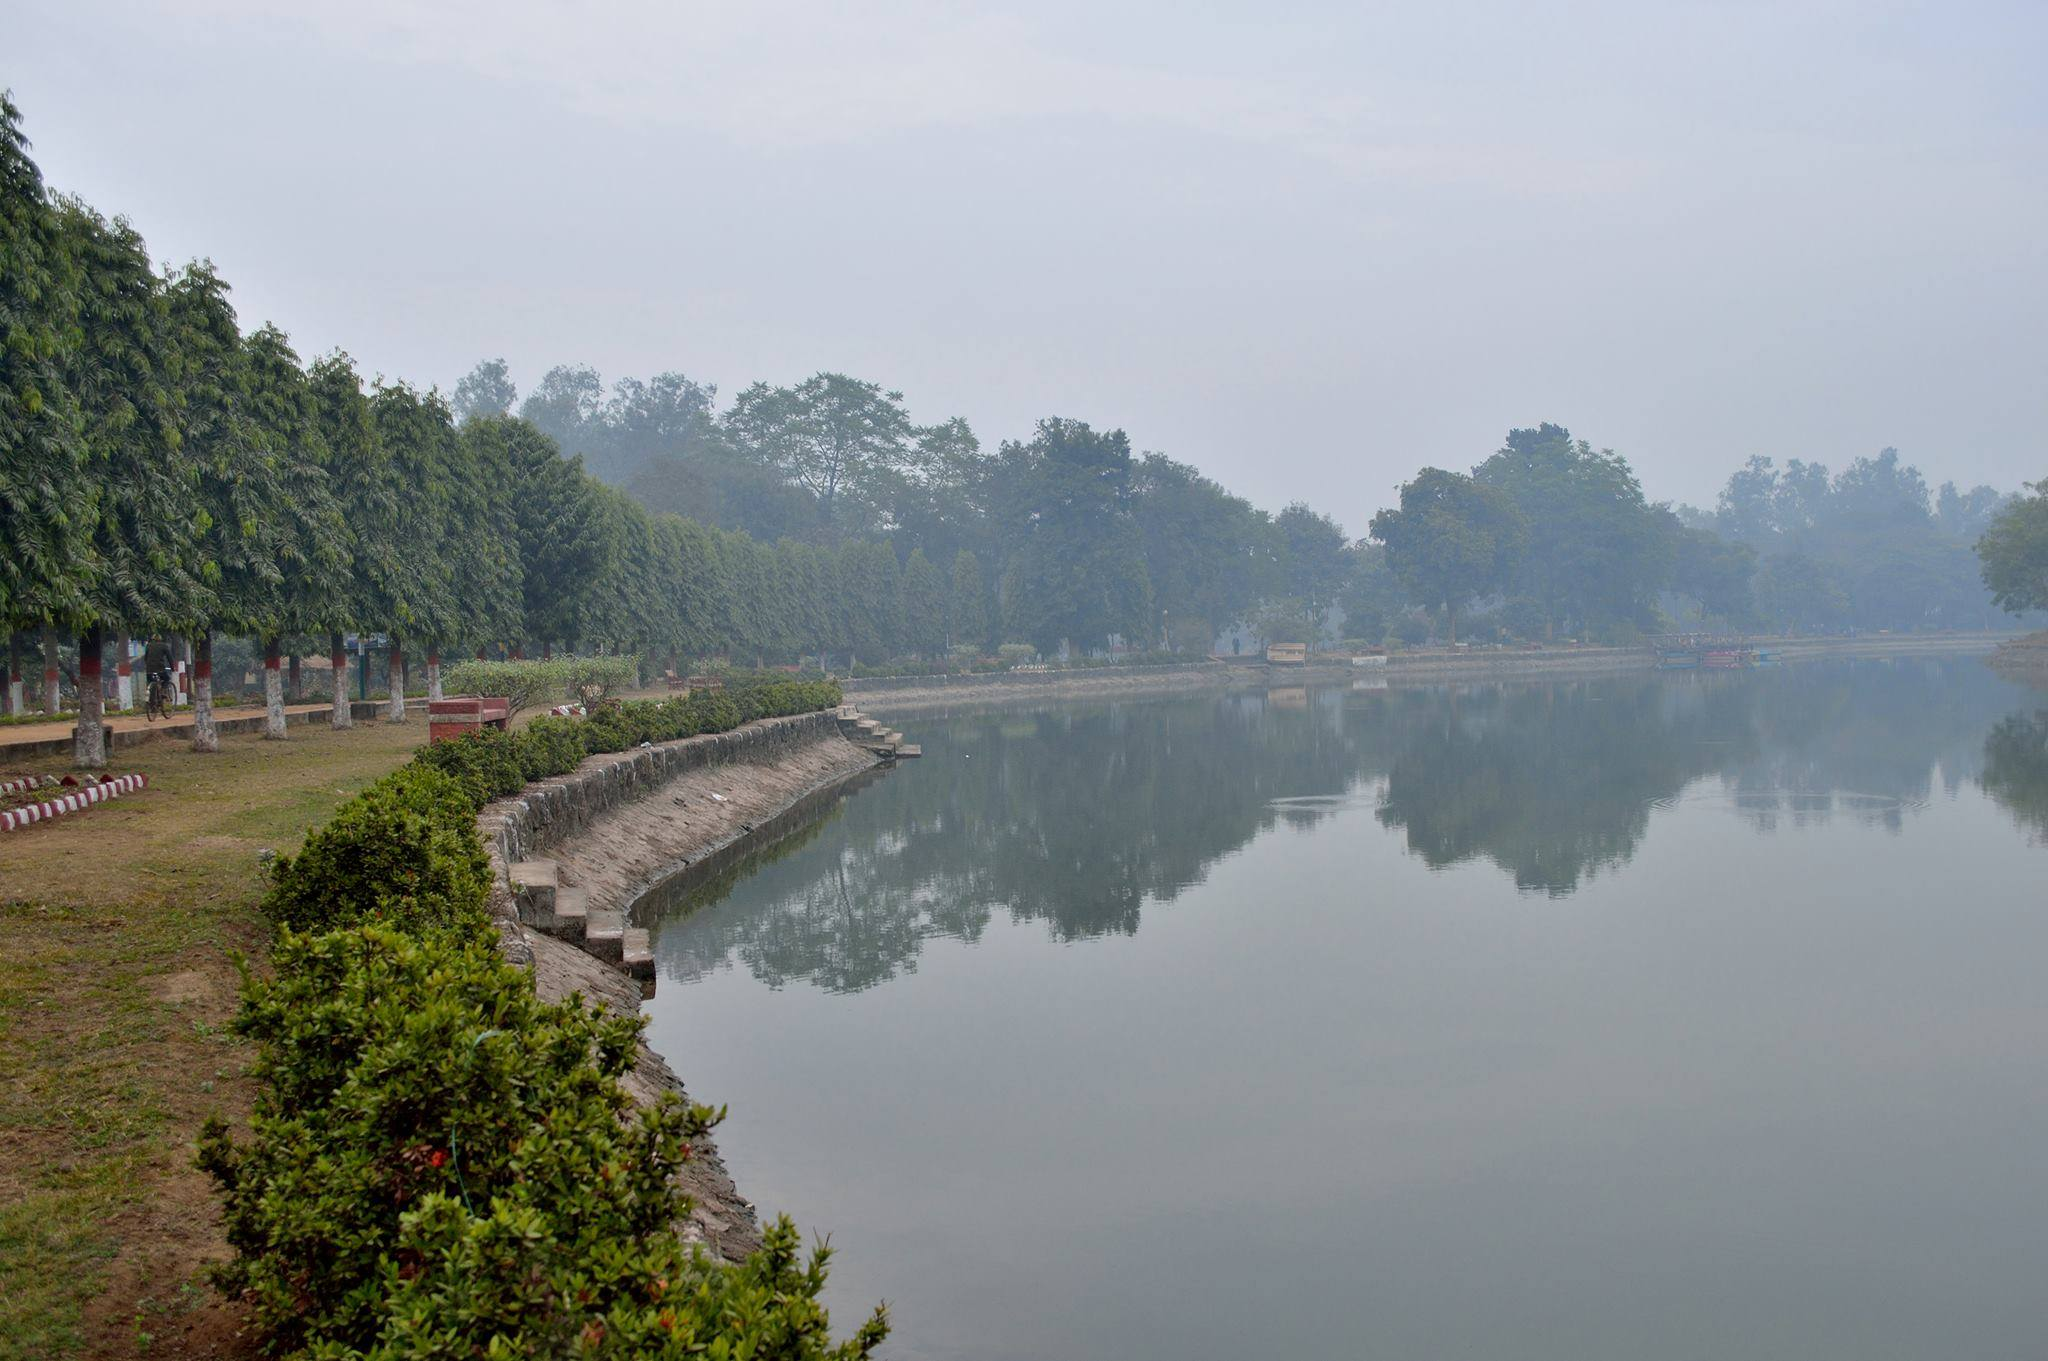 Sight-seeing Place Near Serampore-Durgapur, Kumar Mangalam Park